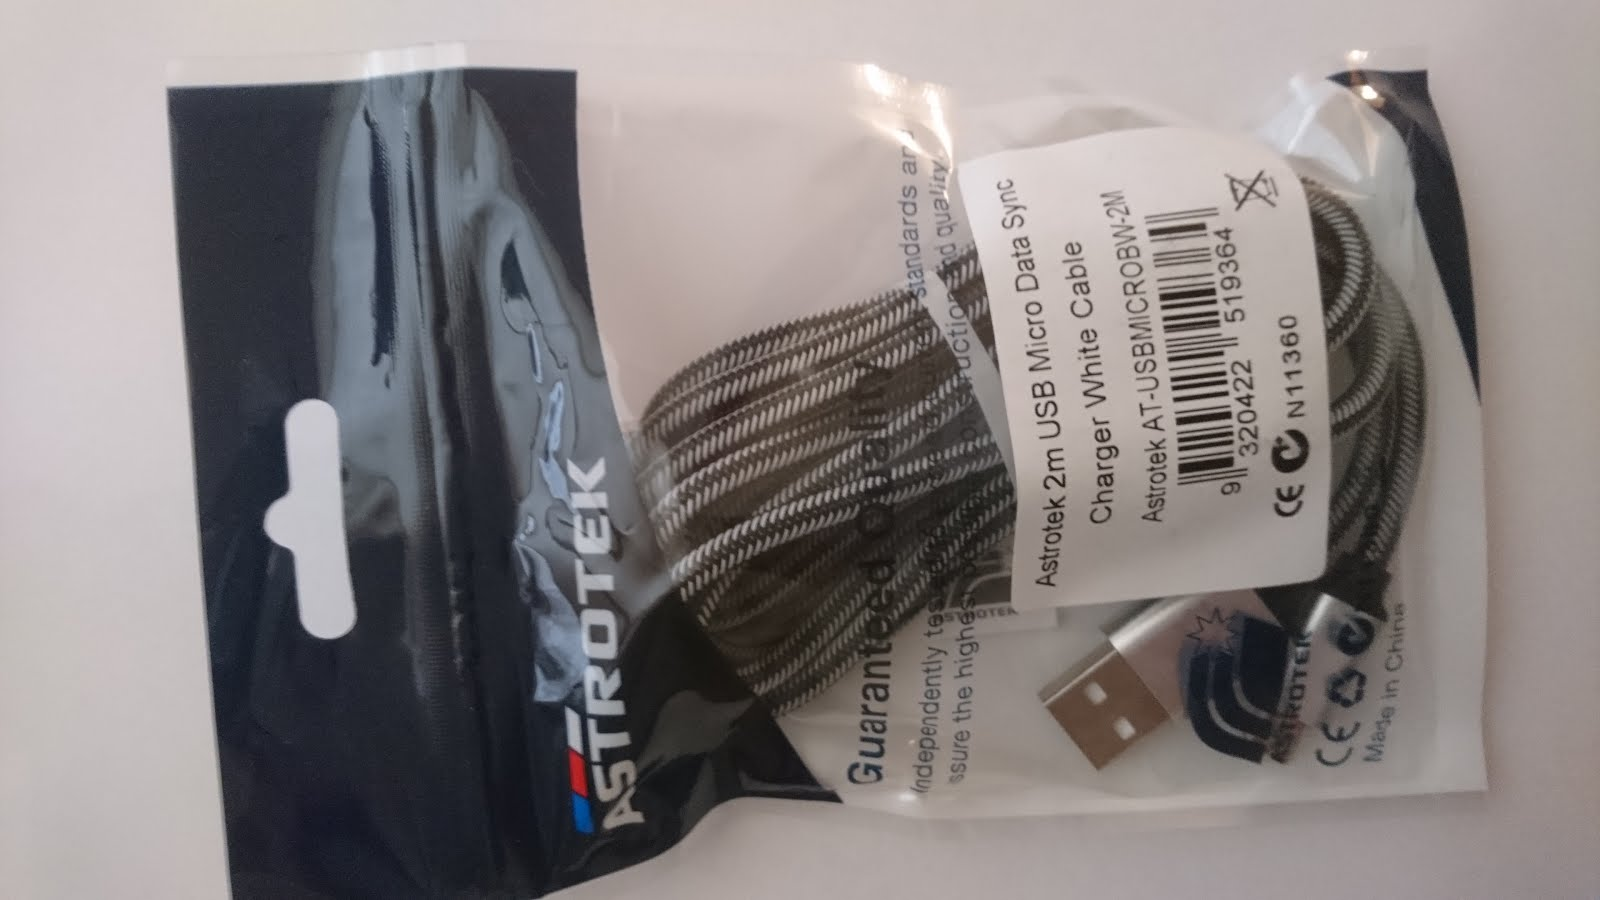 Micro usb cable Astrotek 2M braided $5.00